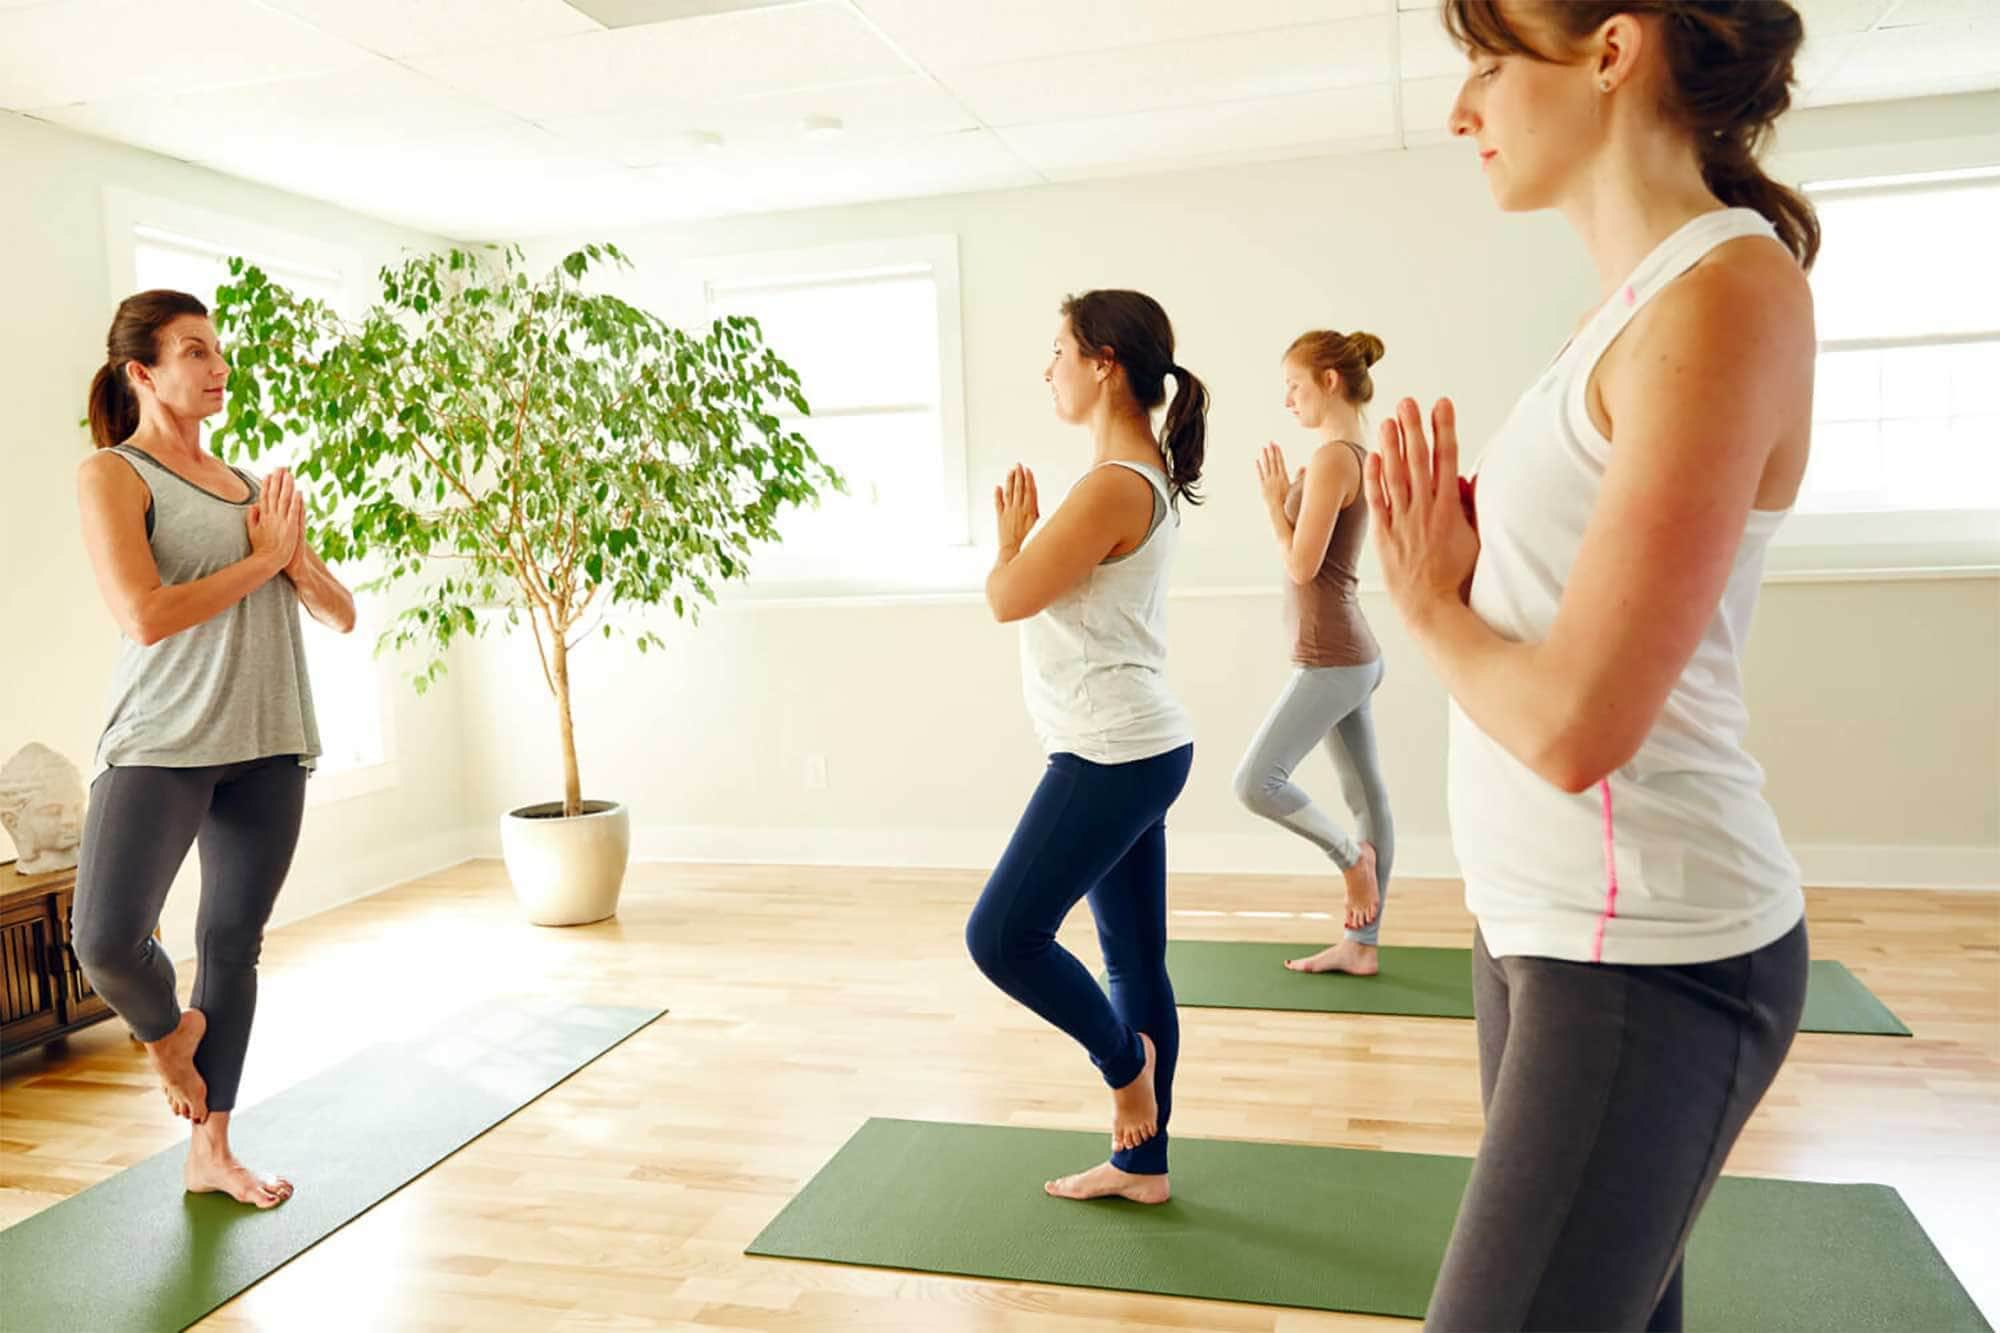 Women recovering from drug and alcohol addiction taking a yoga class at Mountainside rehab center